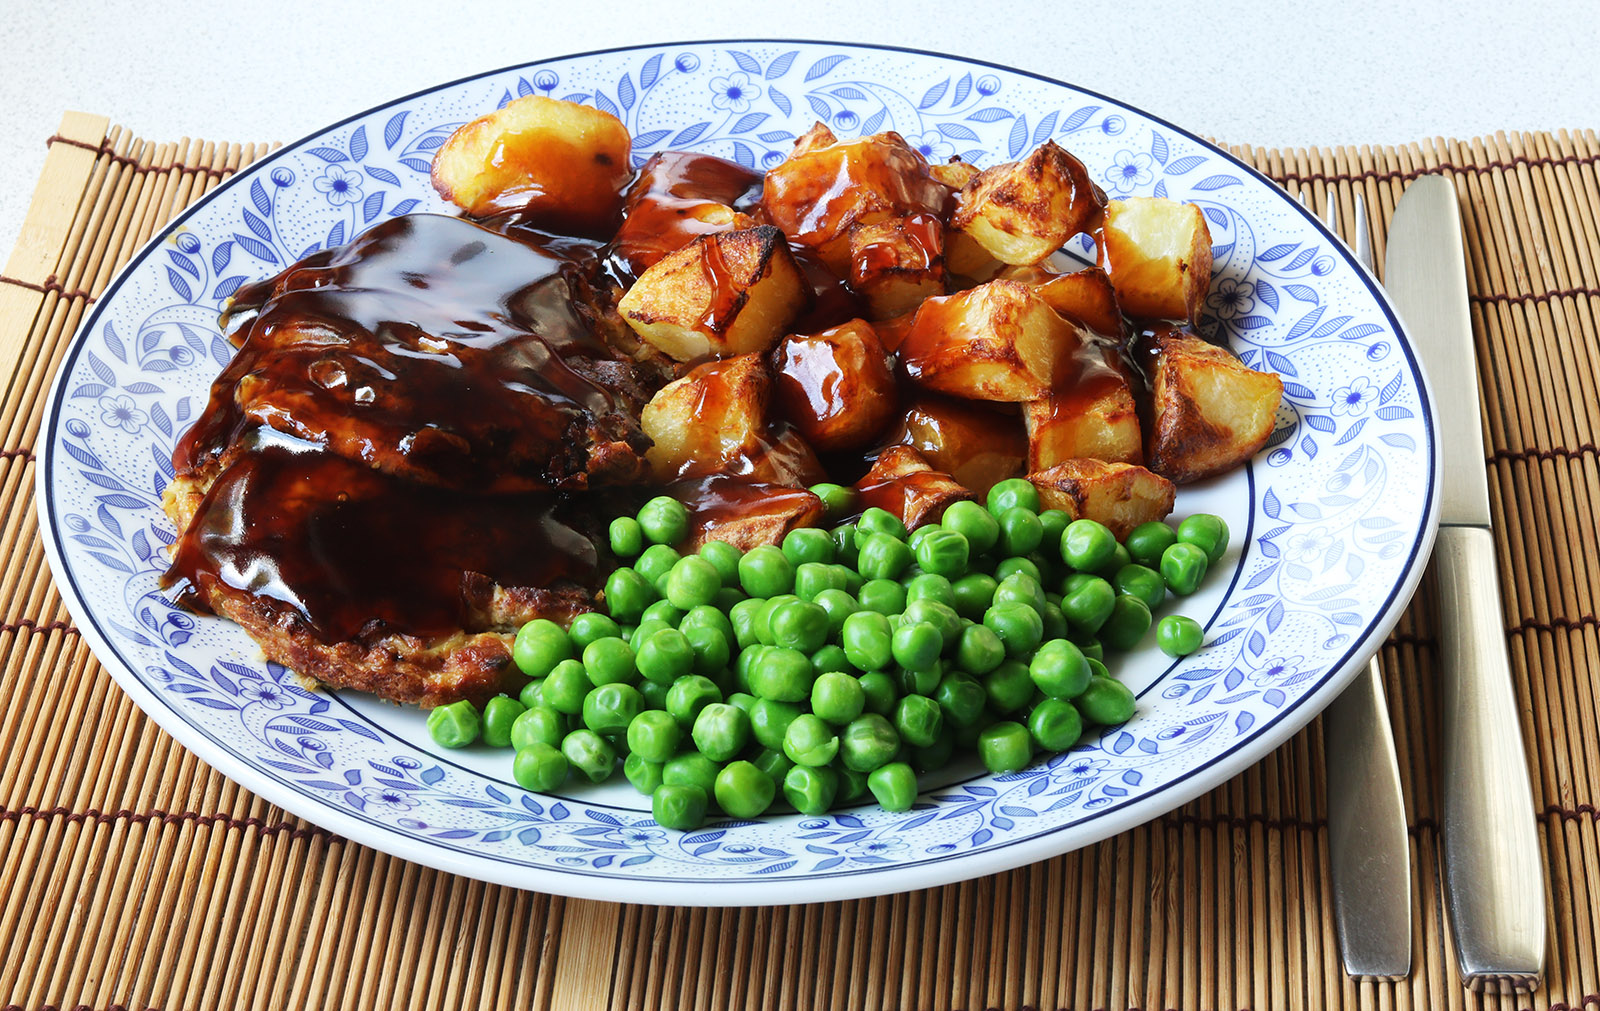 Haslet, roast potatoes, peas 3 s.jpg